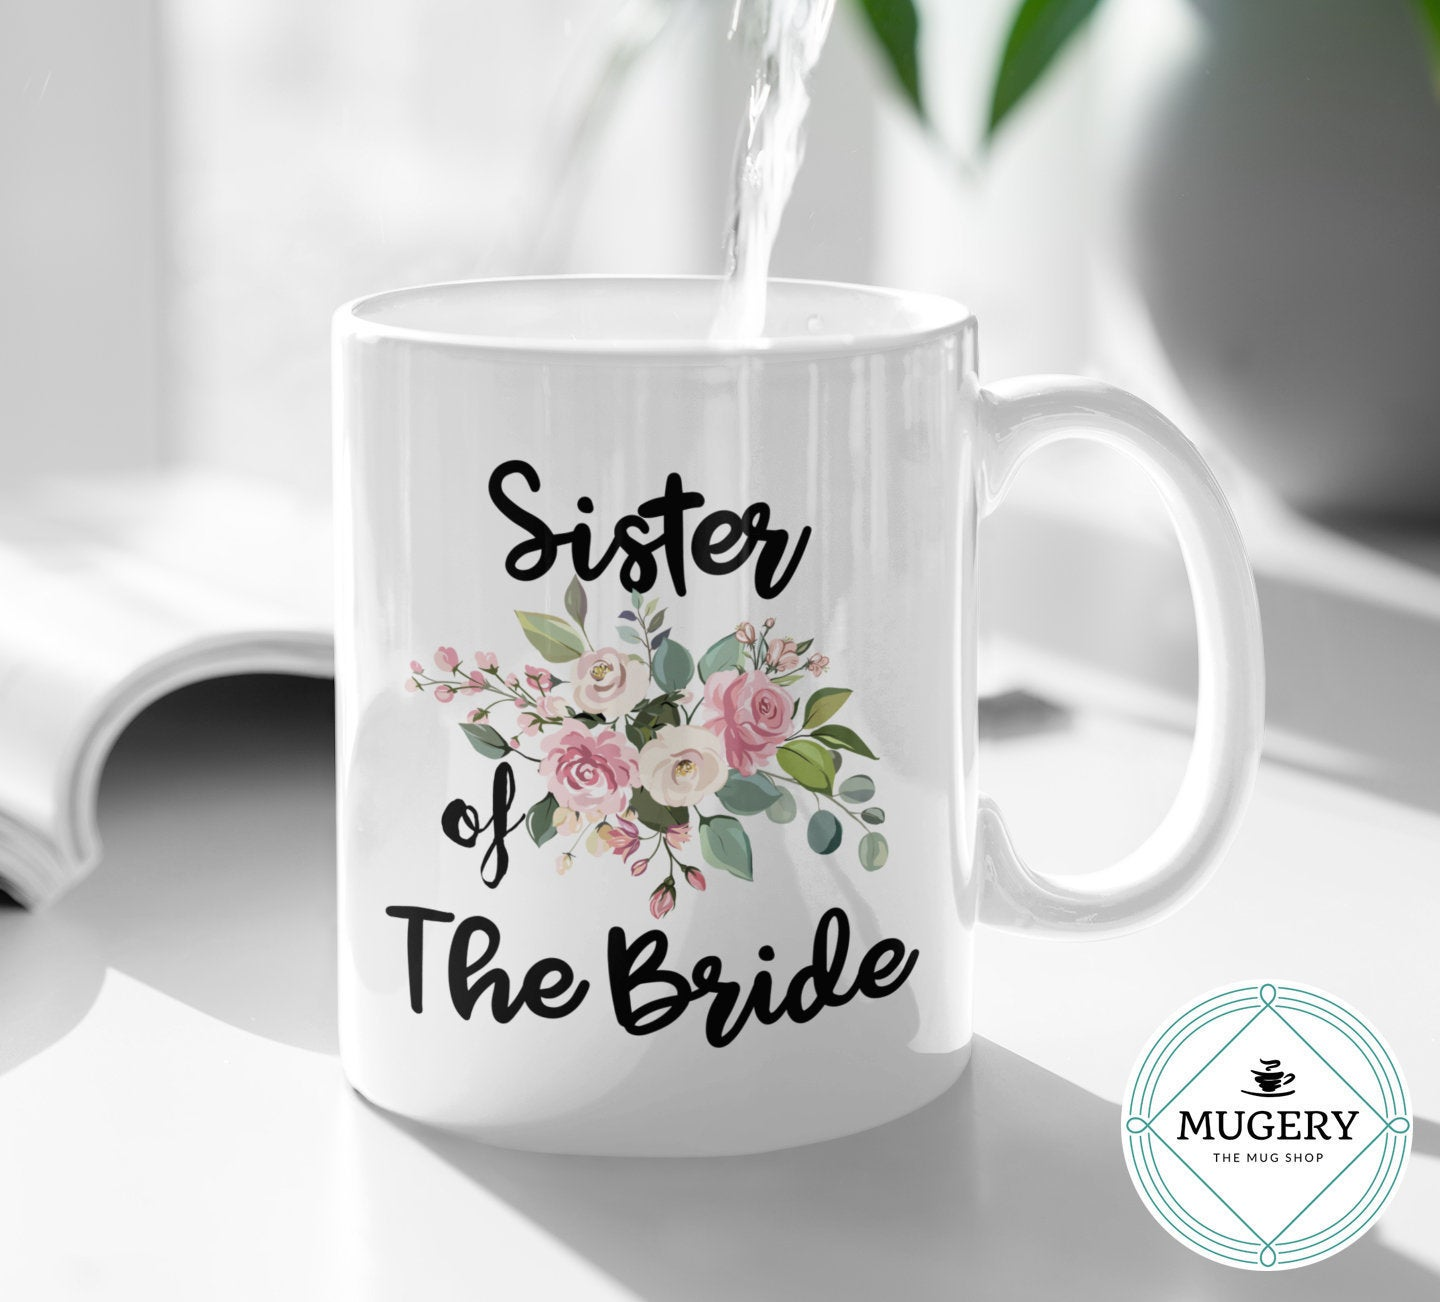 Sister of the Bride Mug - Guestbookery